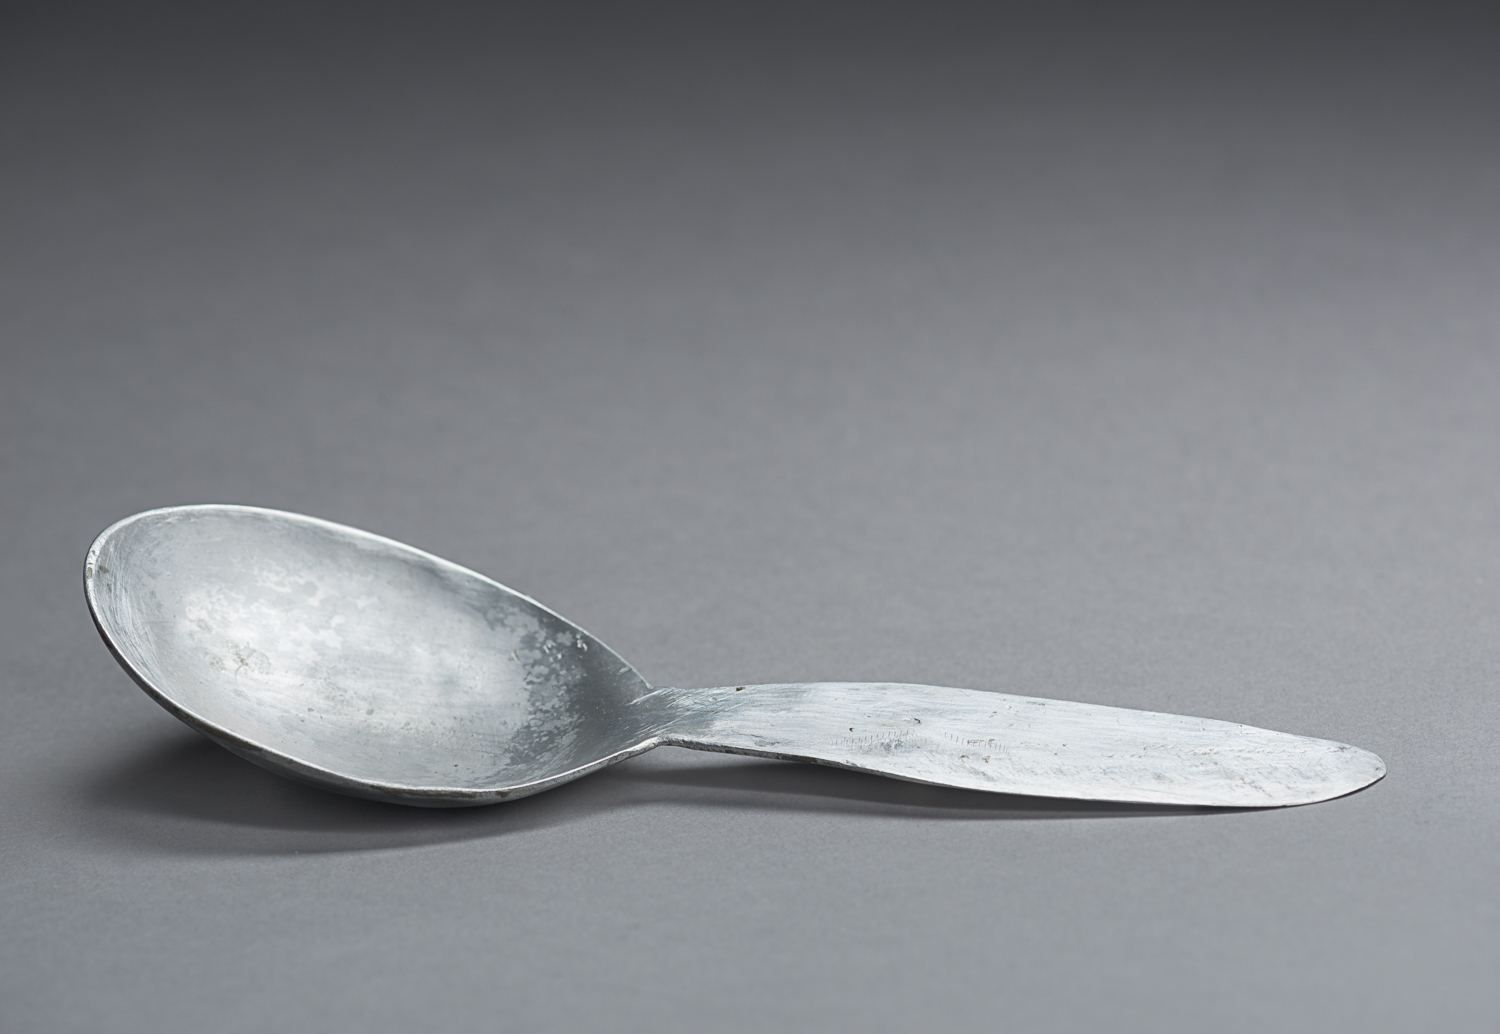 This tin spoon was made by Jacob Chaim when he was prisoner of the Dora-Mittelbau forced labour camp. (Photo: Peter Berra)